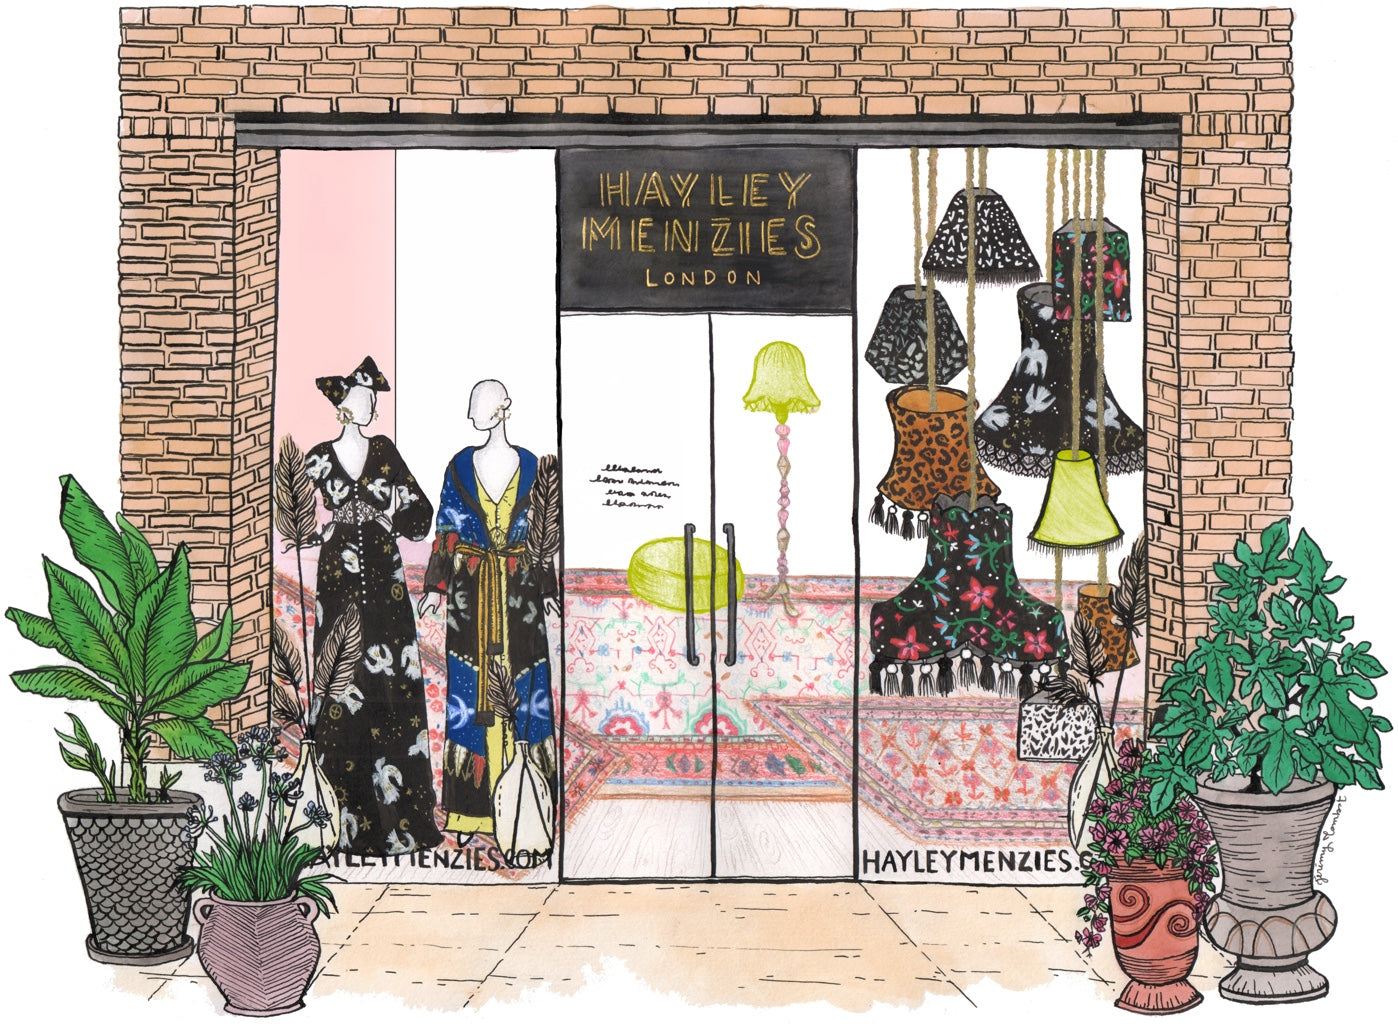 Illustration of Hayley Menzies Store